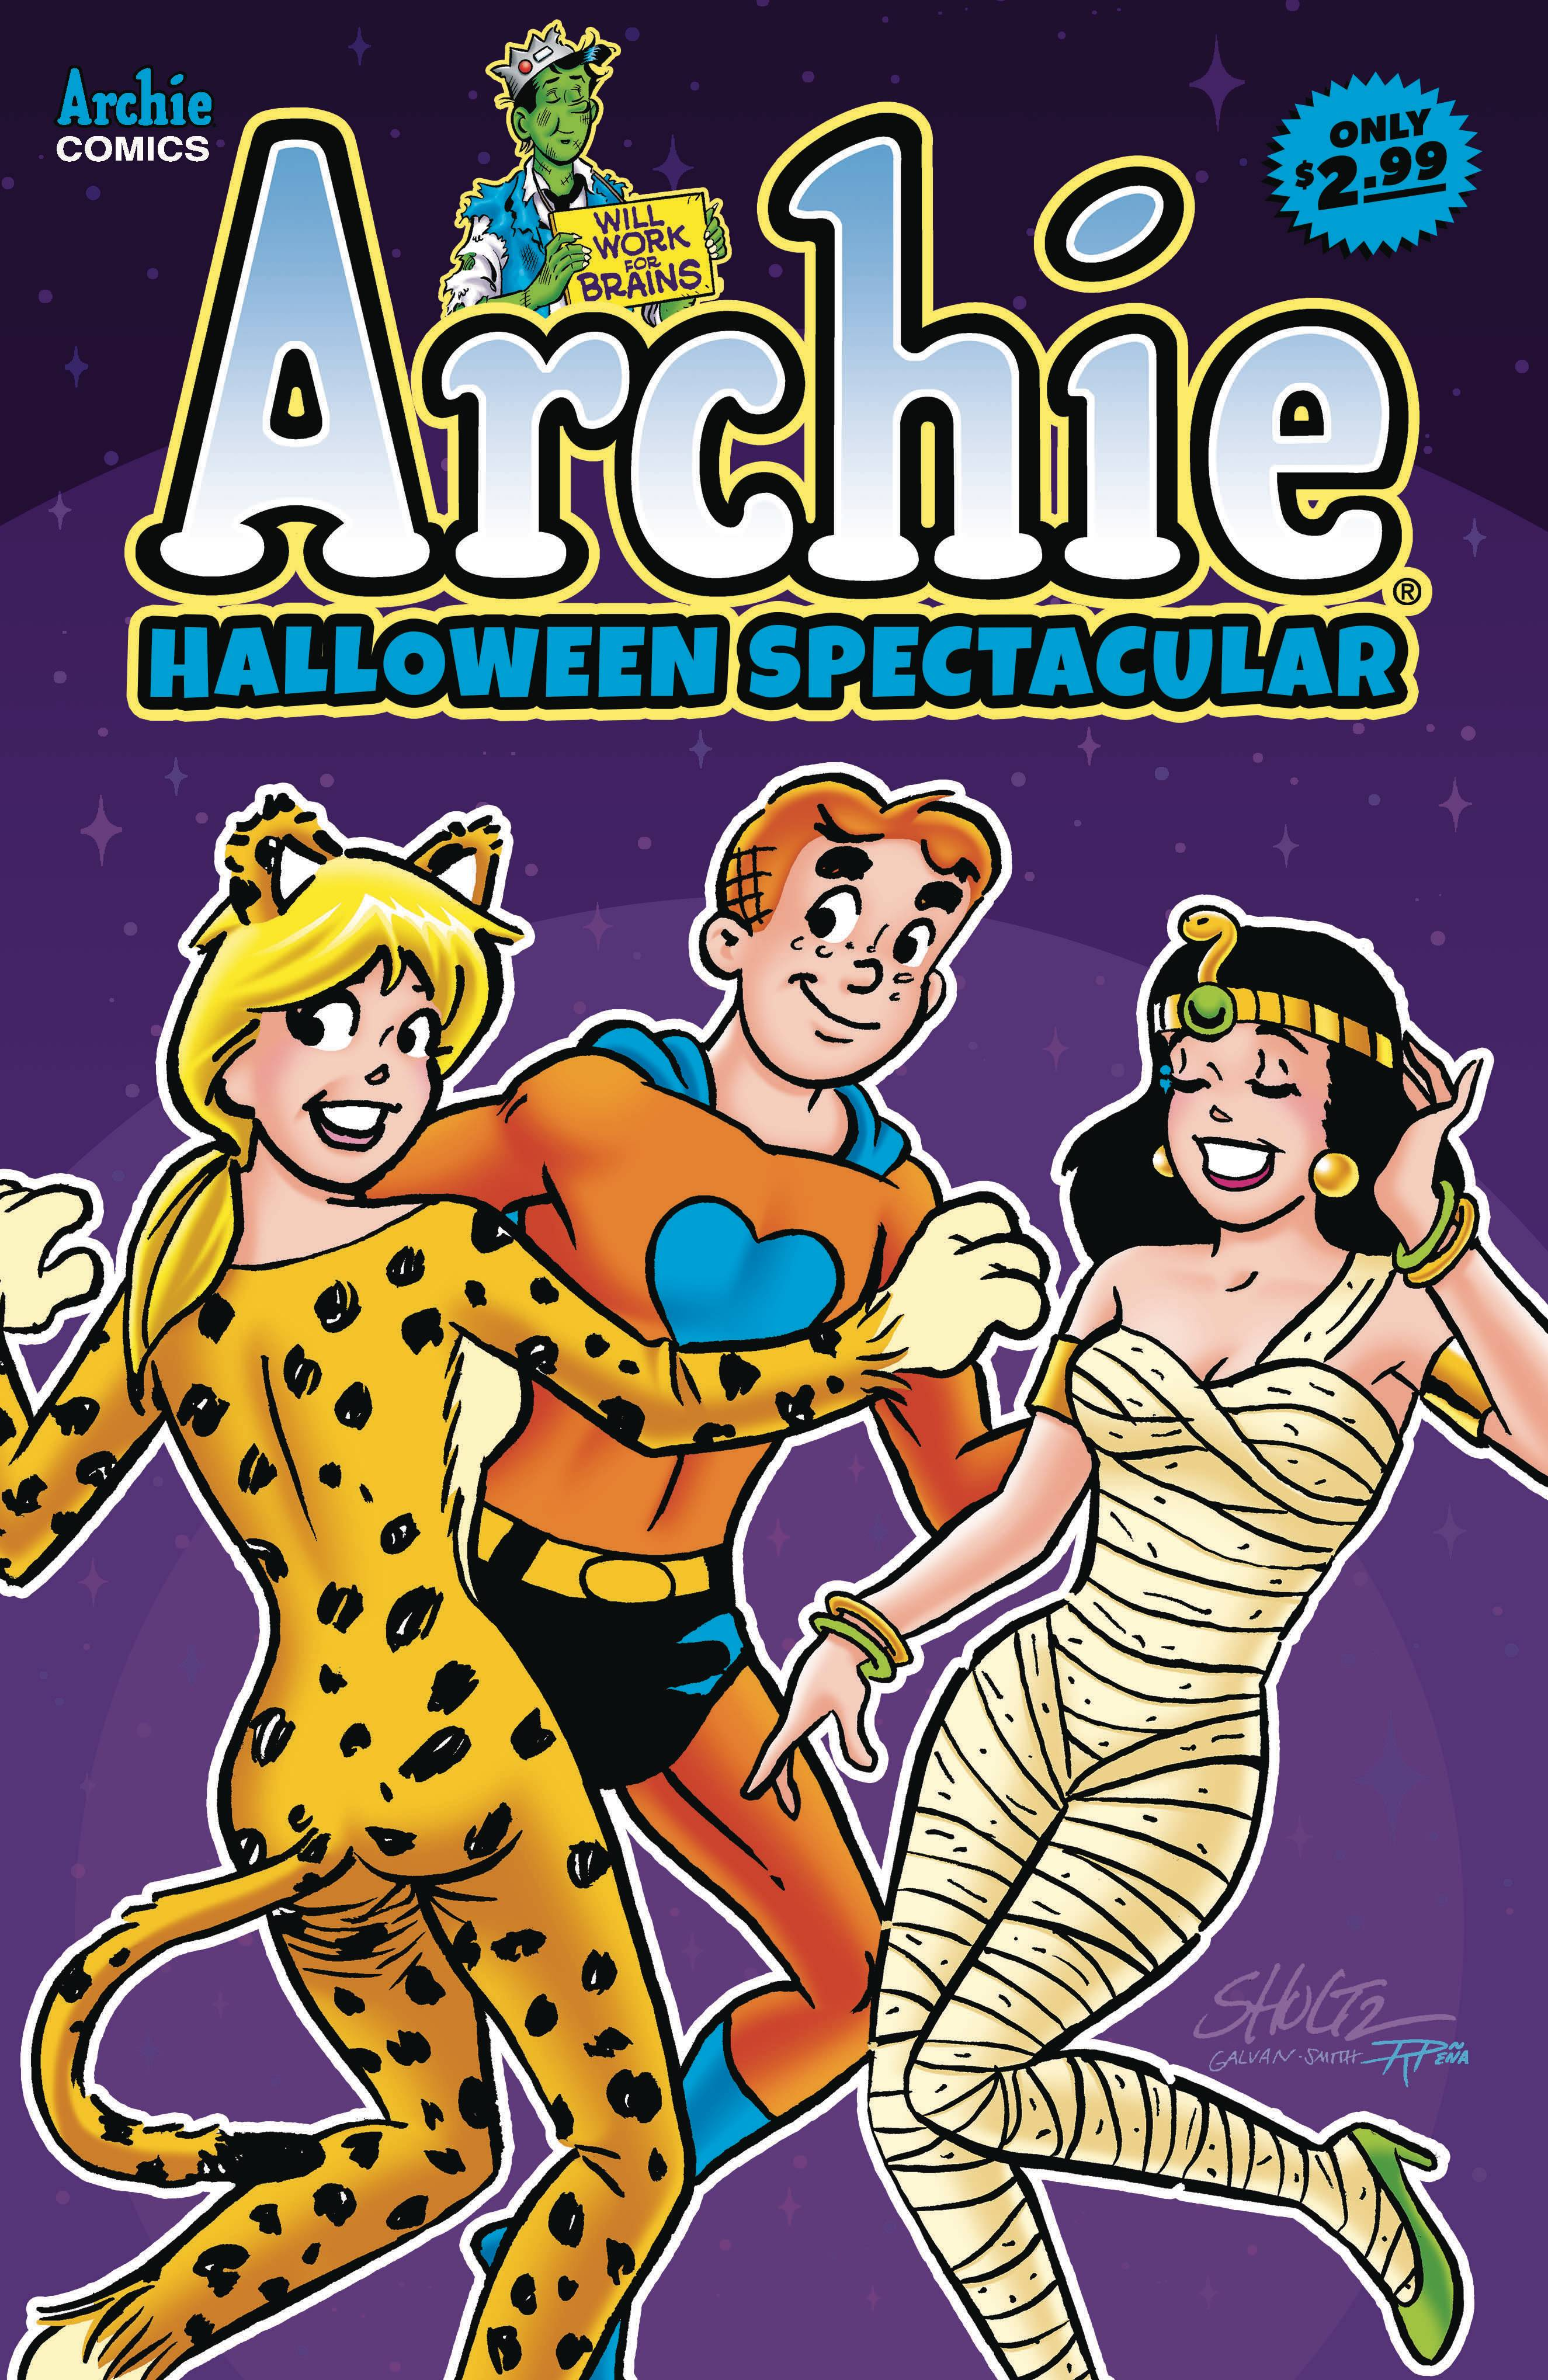 Archie Halloween Spectacular 2020 AUG201175   ARCHIES HALLOWEEN SPECTACULAR #1   Previews World